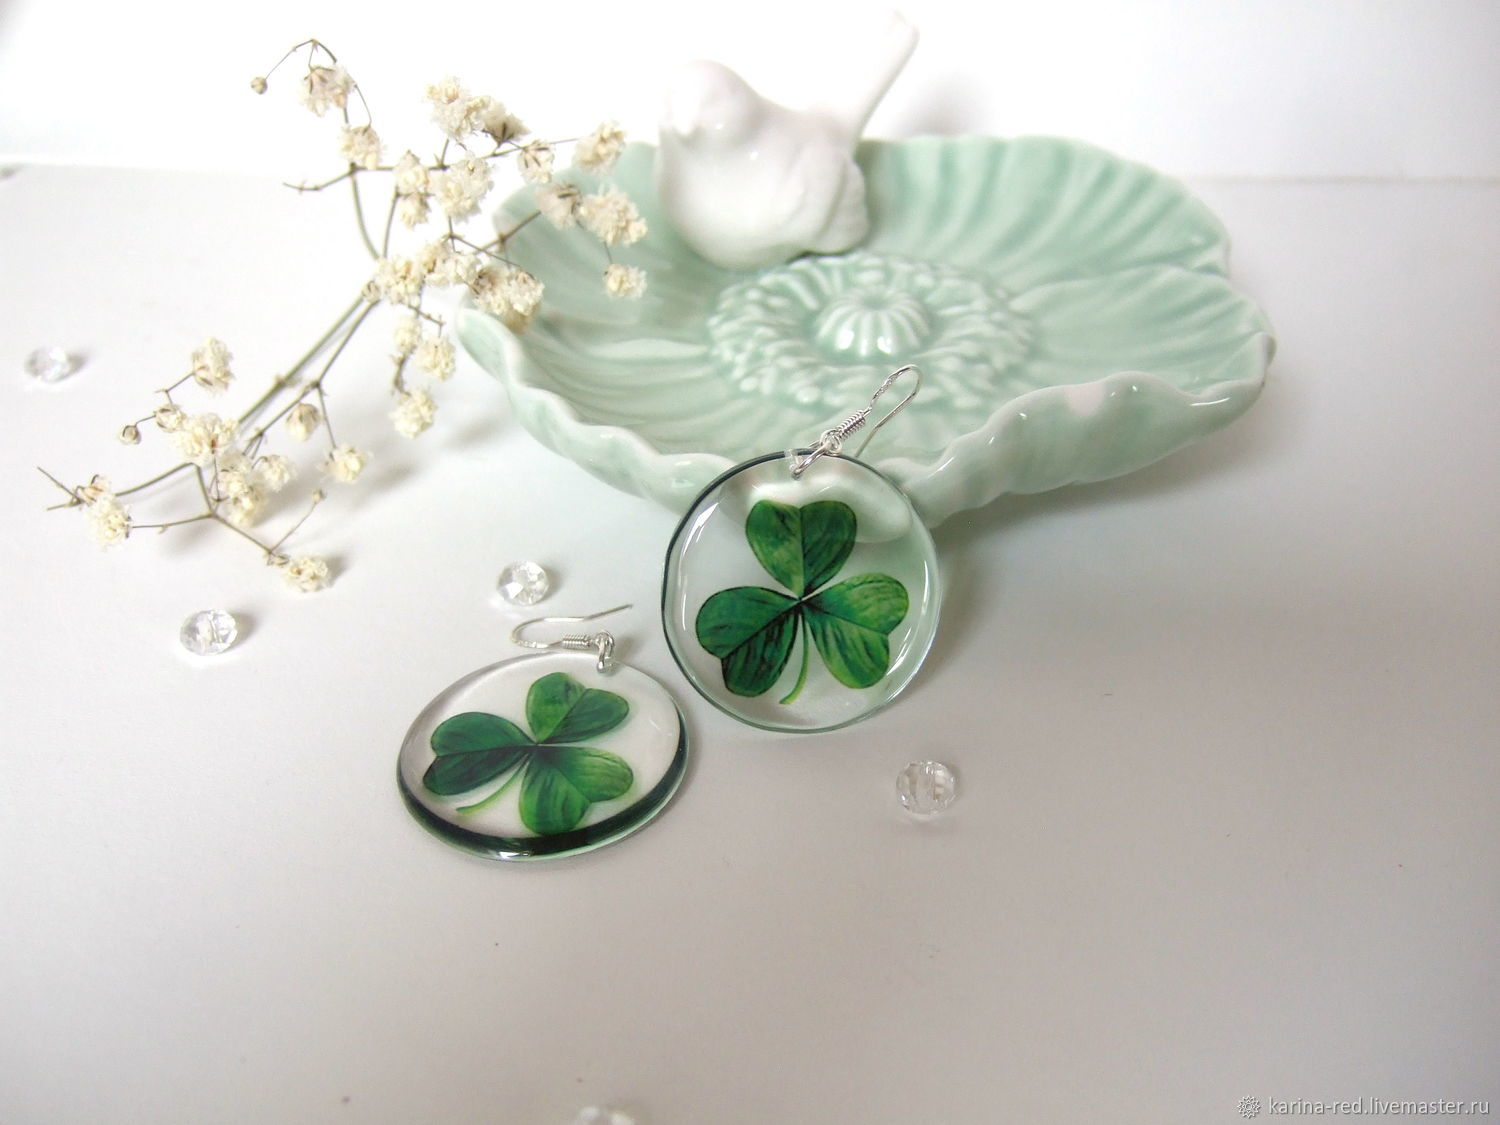 buy transparent earrings made of epoxy resin with leaf clover earrings good luck jewelry clover to purchase of eco earrings boho jewelry shop gifts and decorations